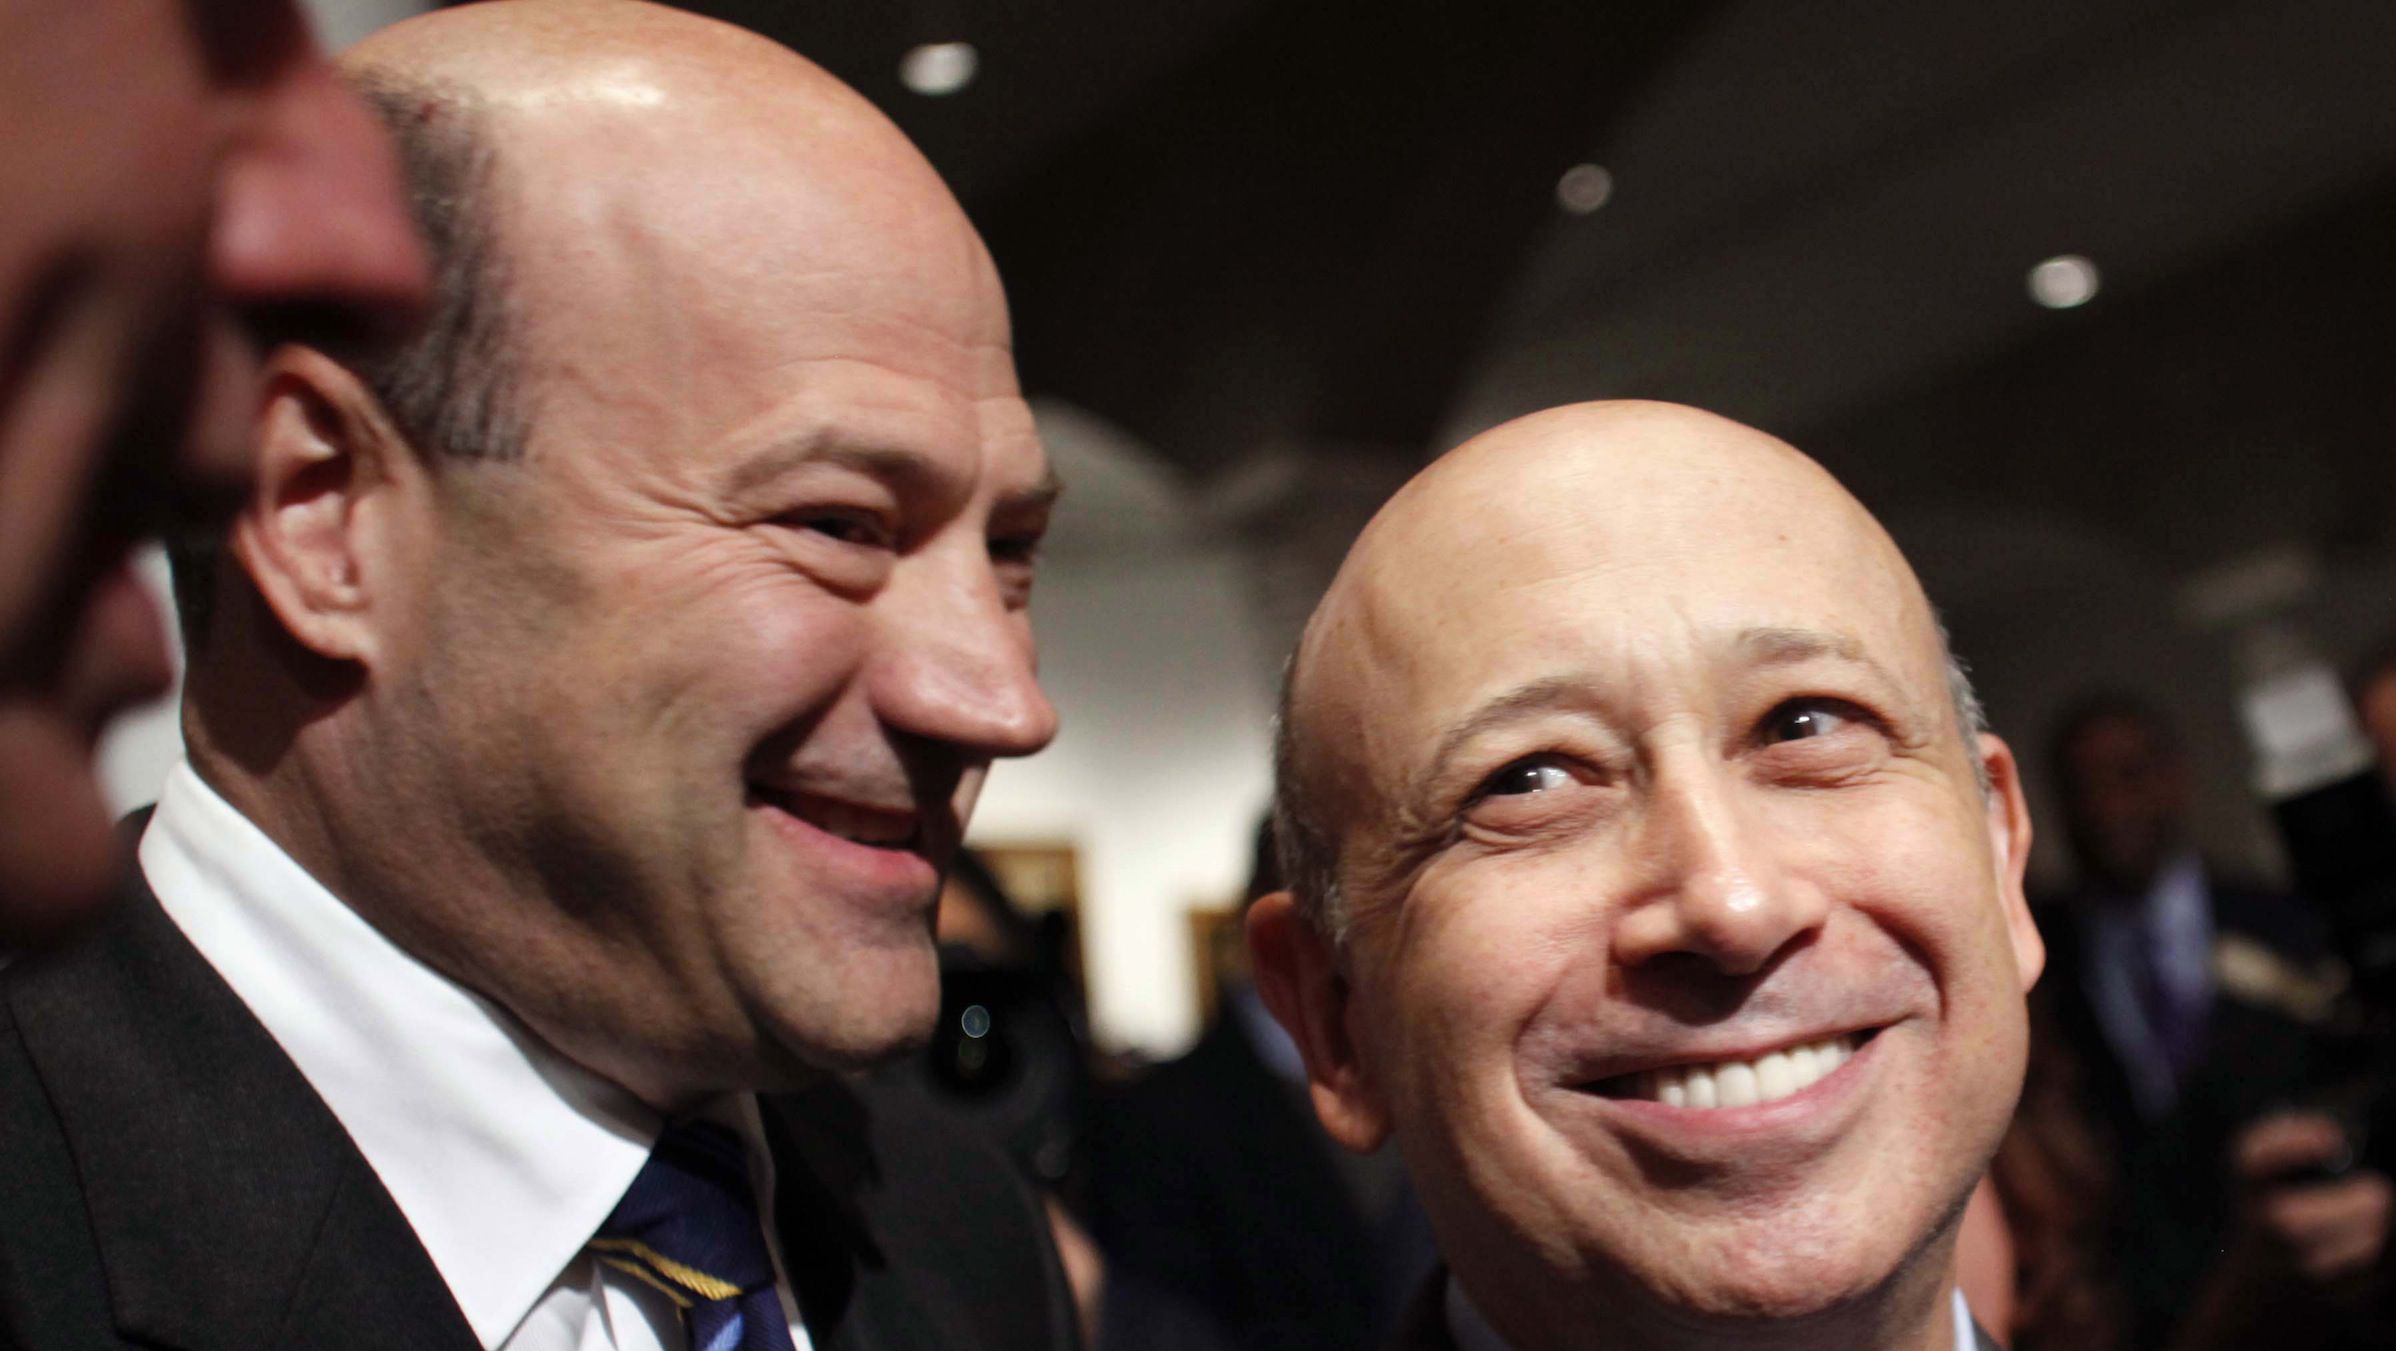 """Goldman Sachs CEO Lloyd Blankfein (R) and his colleague Gary Cohn (L), president and COO, attend a speech by U.S. President Barack Obama about new financial regulation at Cooper Union in New York April 22, 2010. Obama scolded Wall Street on Thursday for its """"furious efforts"""" to fight tighter regulation, saying the United States was doomed to another financial crisis if reforms were not implemented. REUTERS/Natalie Behring (UNITED STATES - Tags: POLITICS BUSINESS) - RTR2D4SN"""